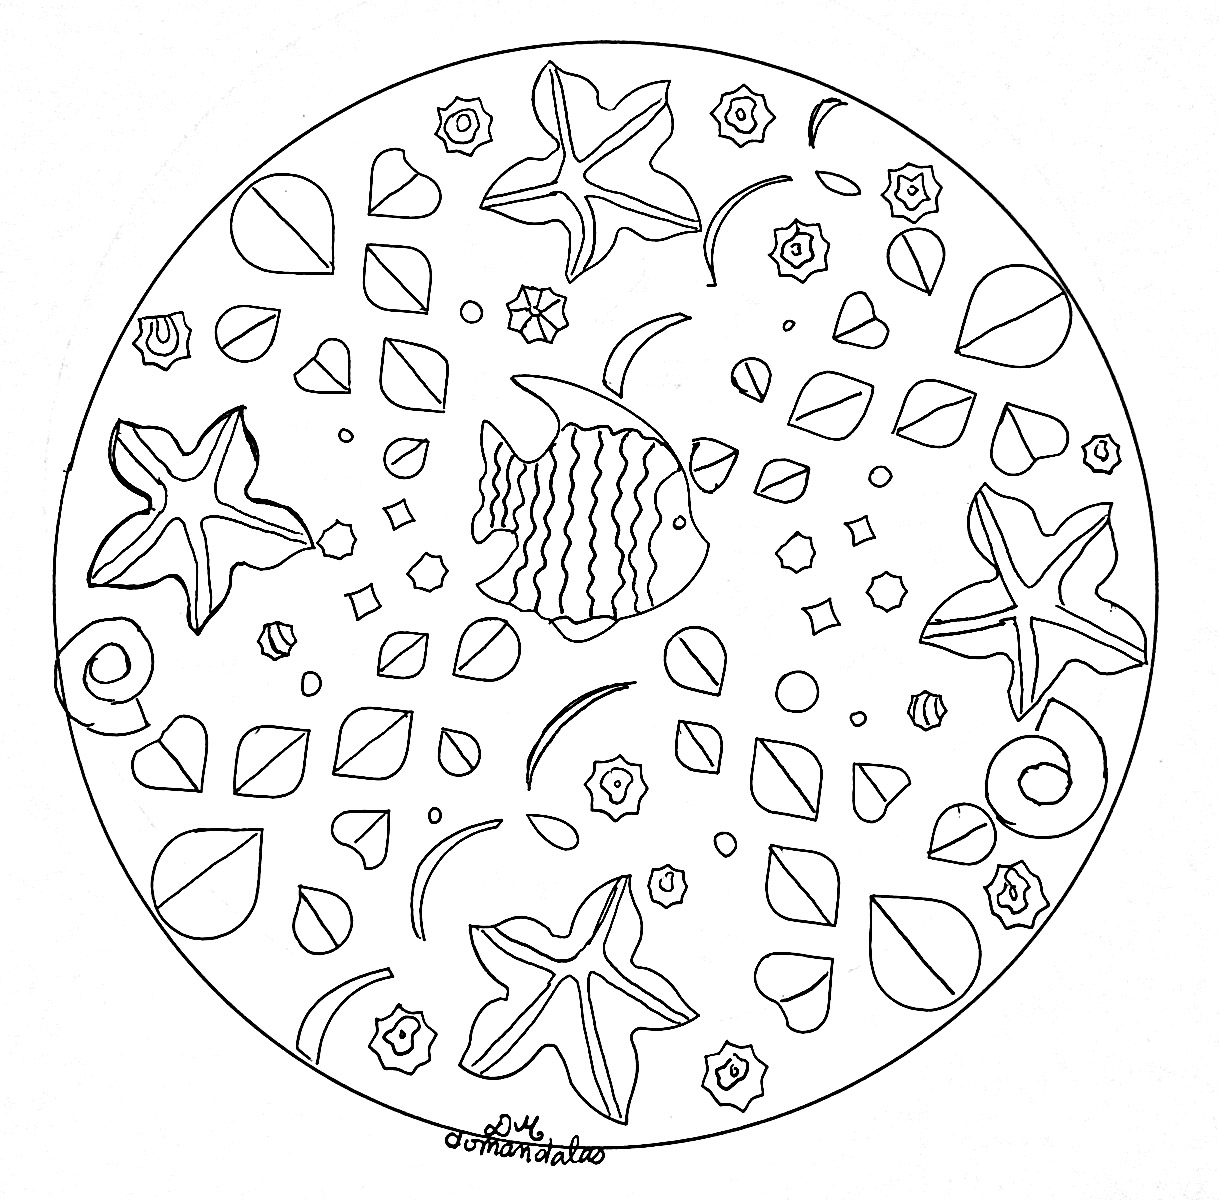 These Aquarium fish are ready to be colored in this incredible Mandala, you can print it and let your creativity guide you.